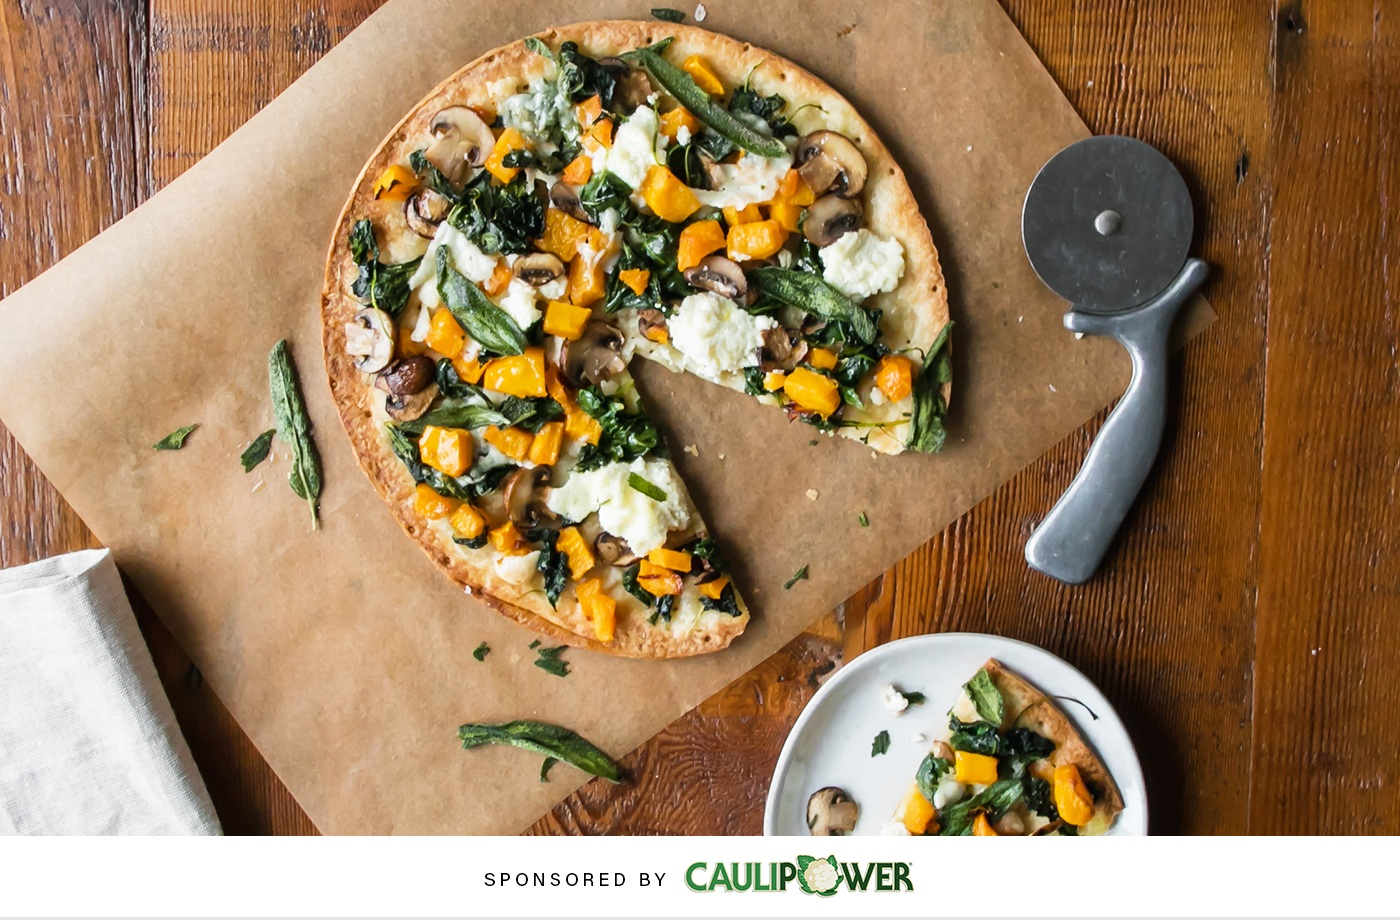 Give your holiday appetizer spread a healthy upgrade with this cauliflower harvest pizza recipe